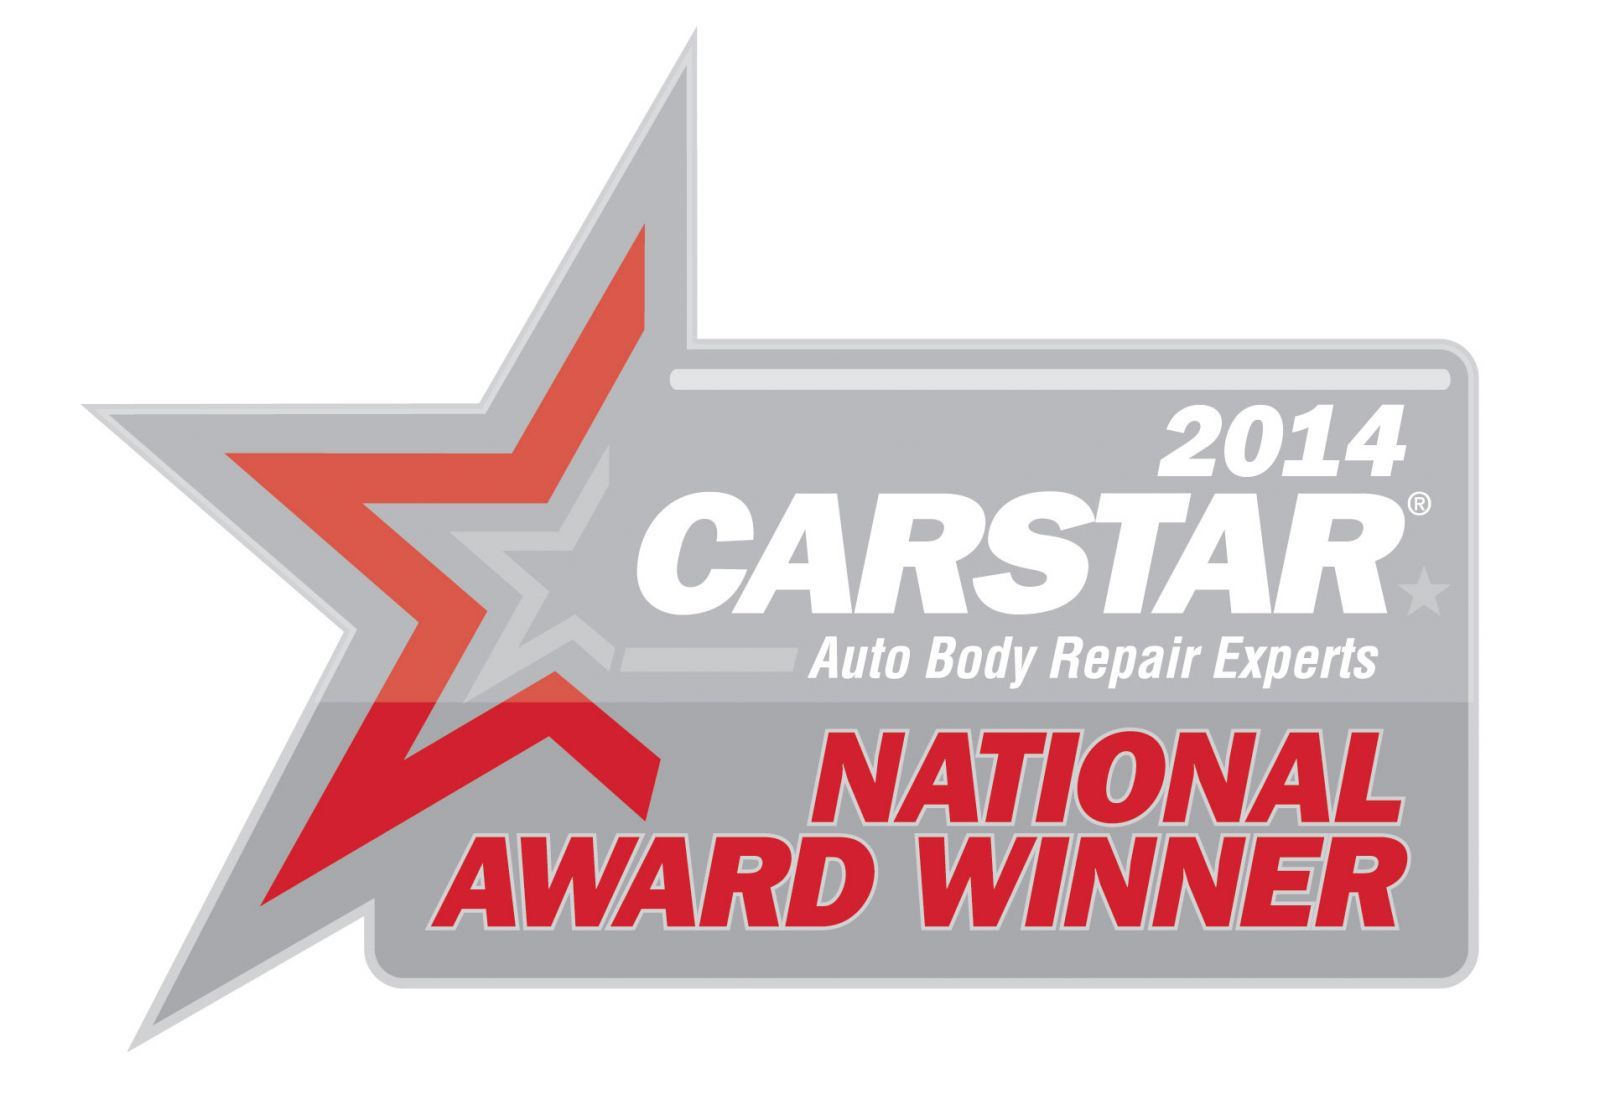 Sidney CARSTAR: 2014 National Award Winner